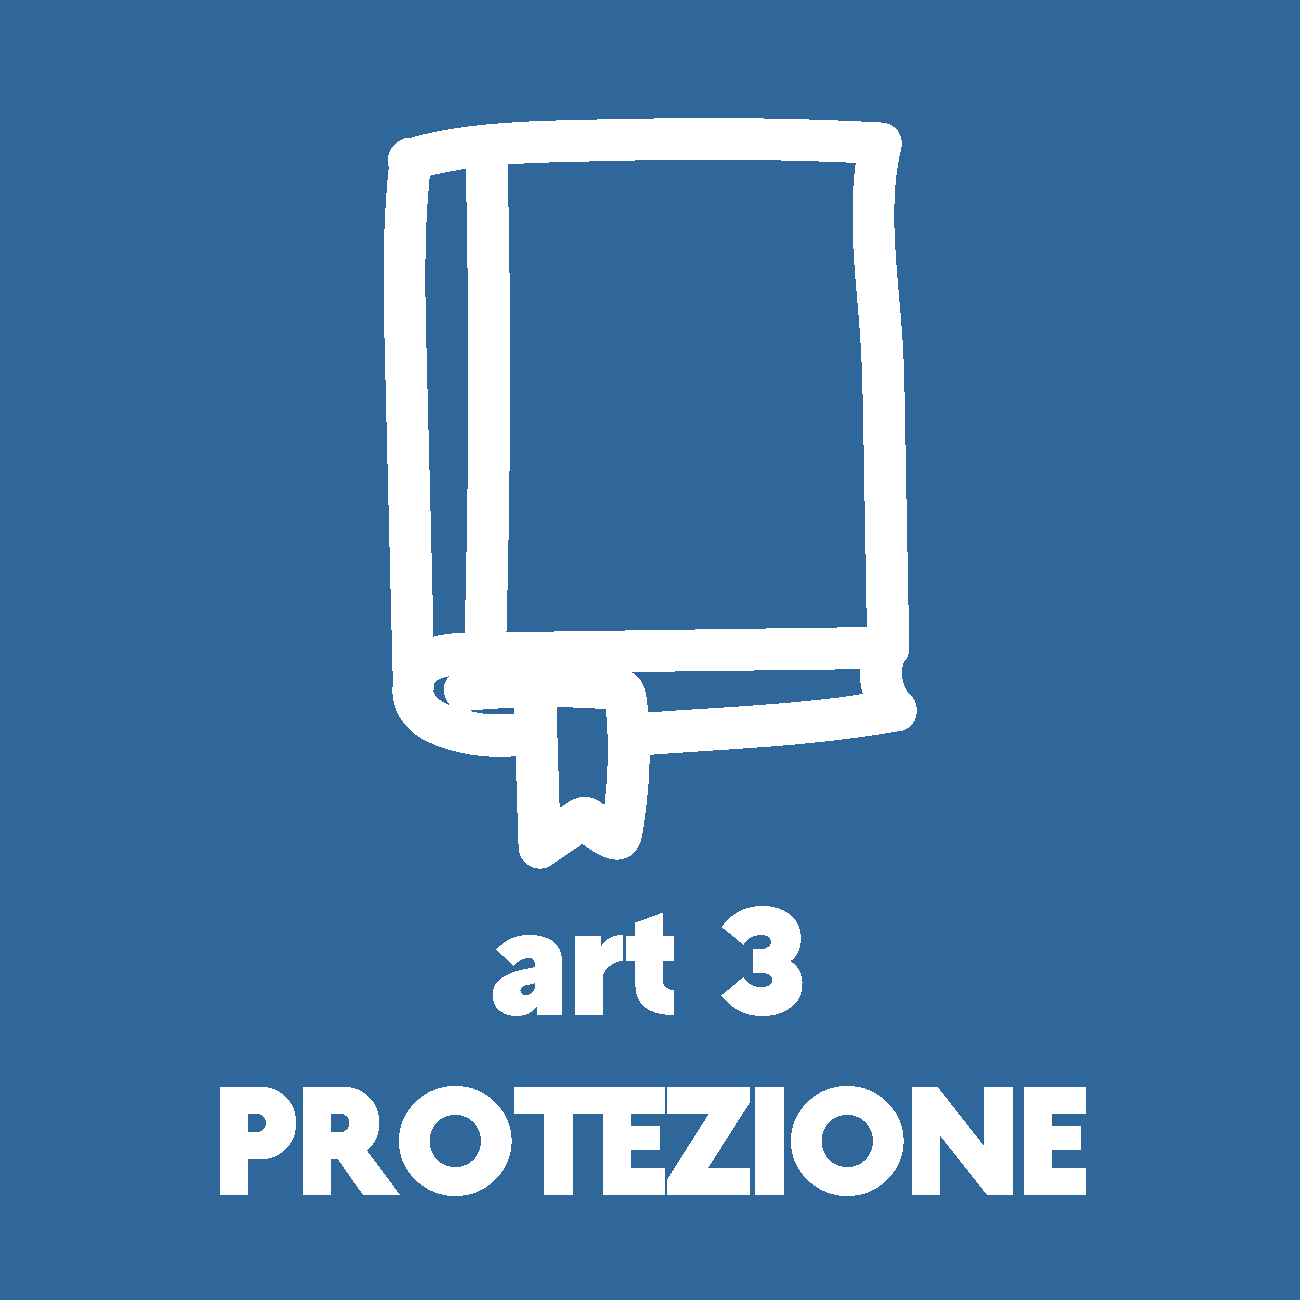 Art 03 protection